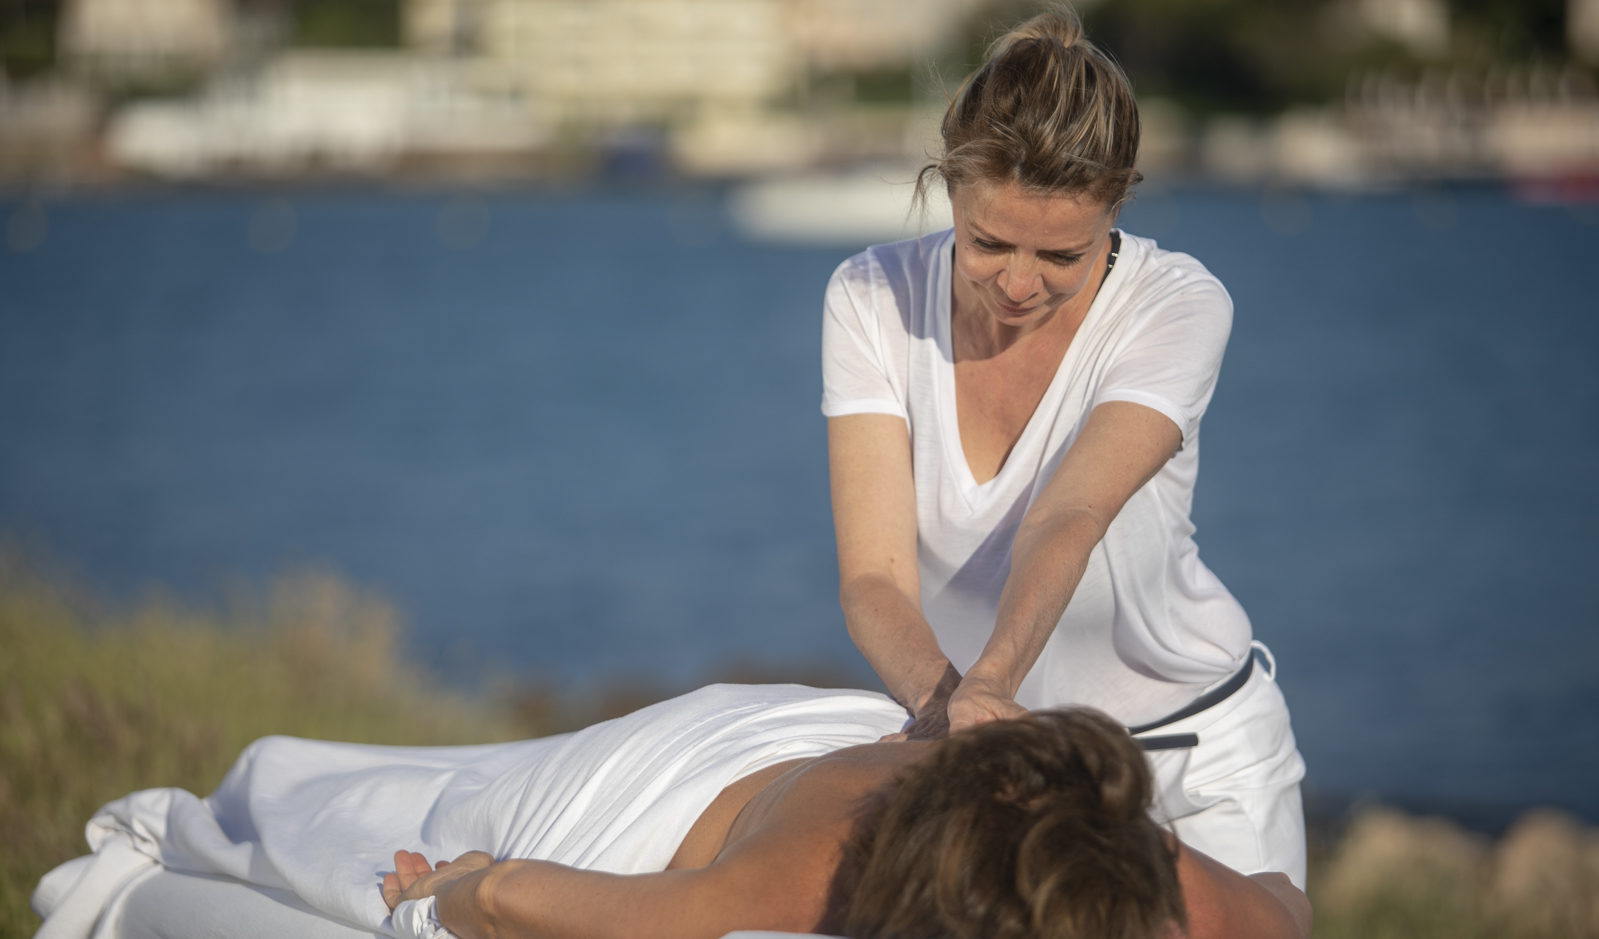 Massage Monaco sur yatch